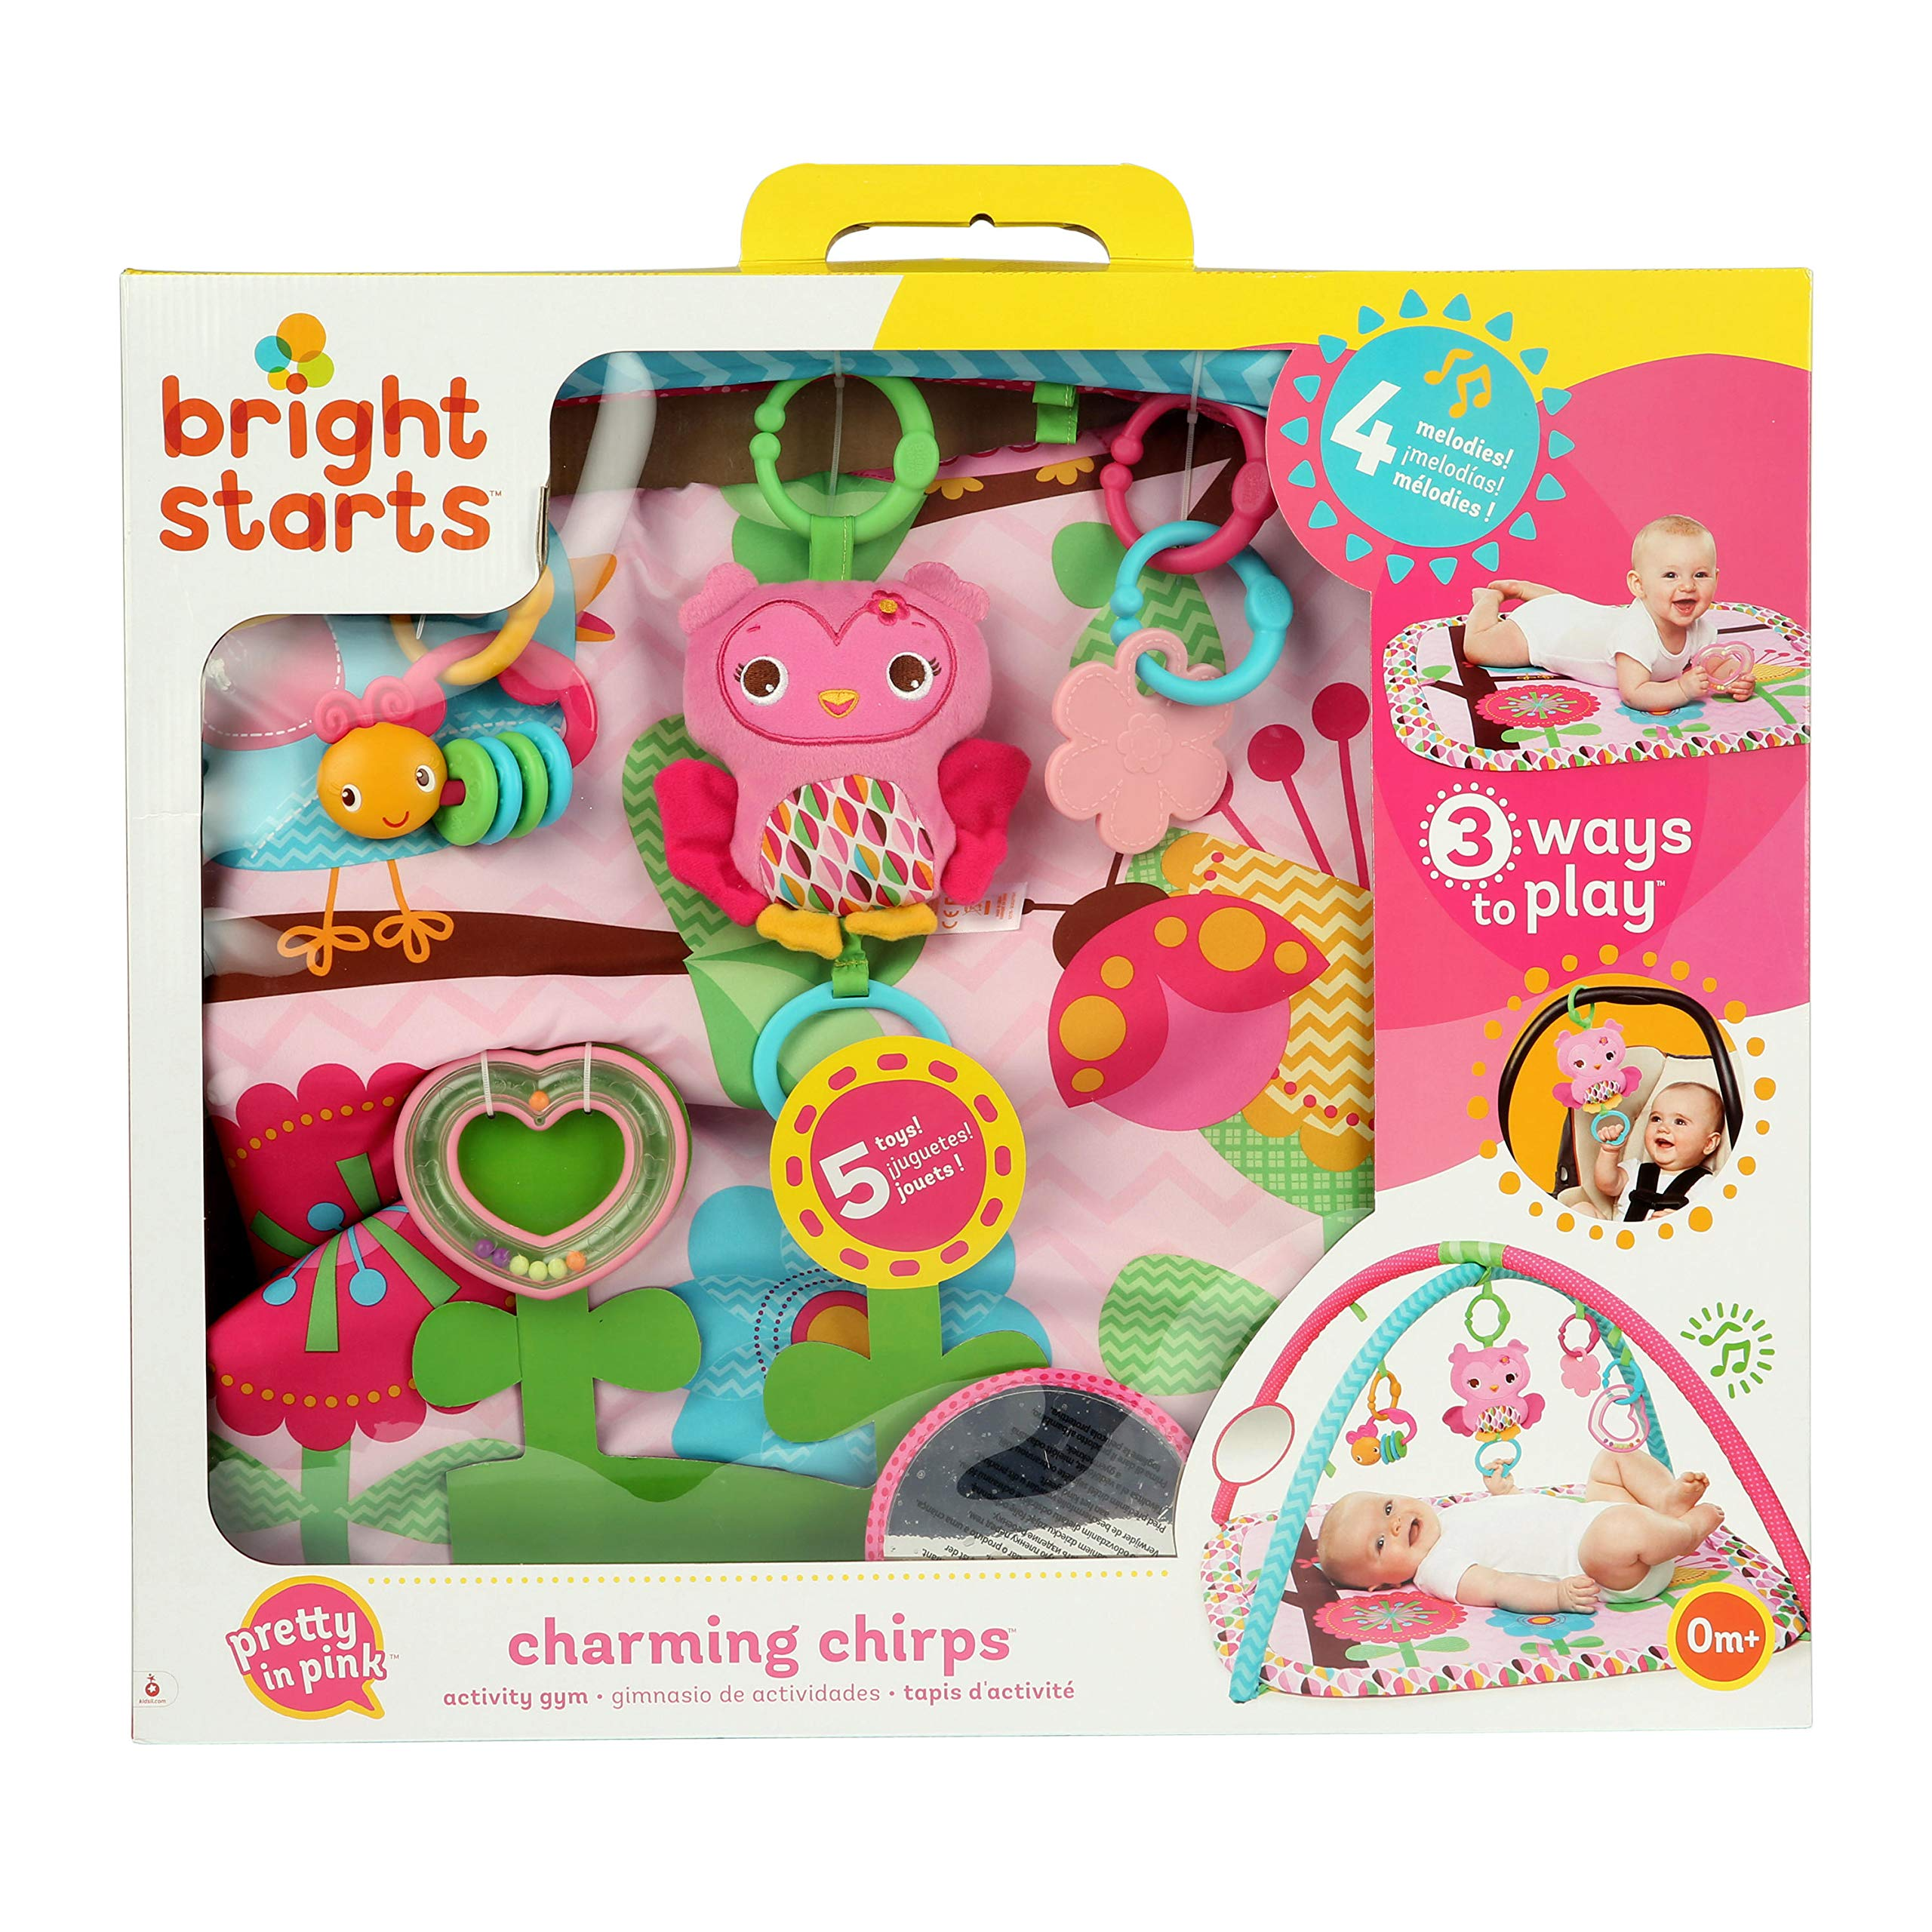 Bright Starts Charming Chirps Activity Gym, Pretty In Pink by Bright Starts (Image #12)